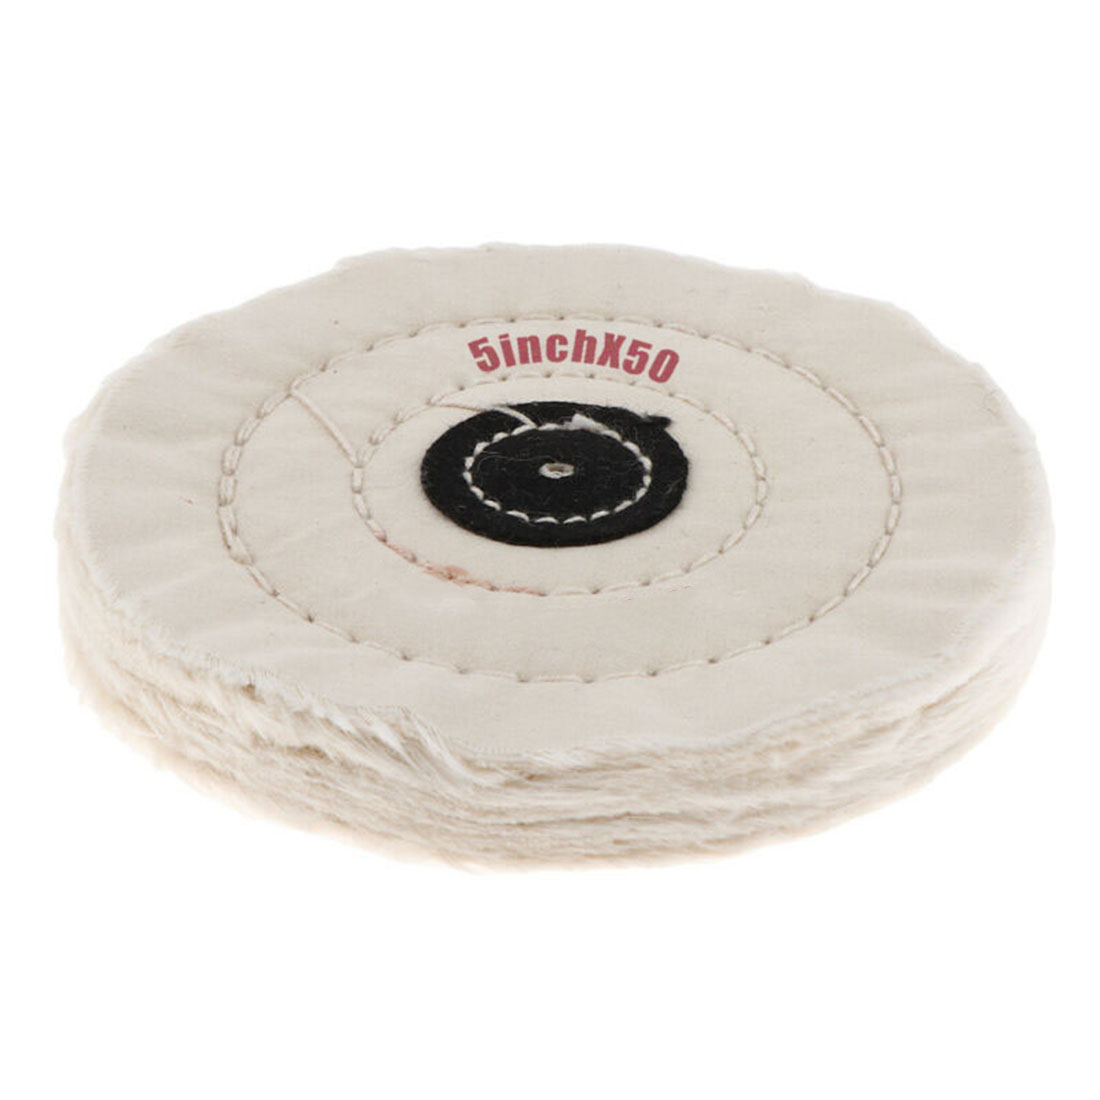 5inch 50 Layer Cotton Cloth Buffing Wheel Pad Polishing Jewelry Accessories For Polishing Metal,brass, Aluminum Bronze